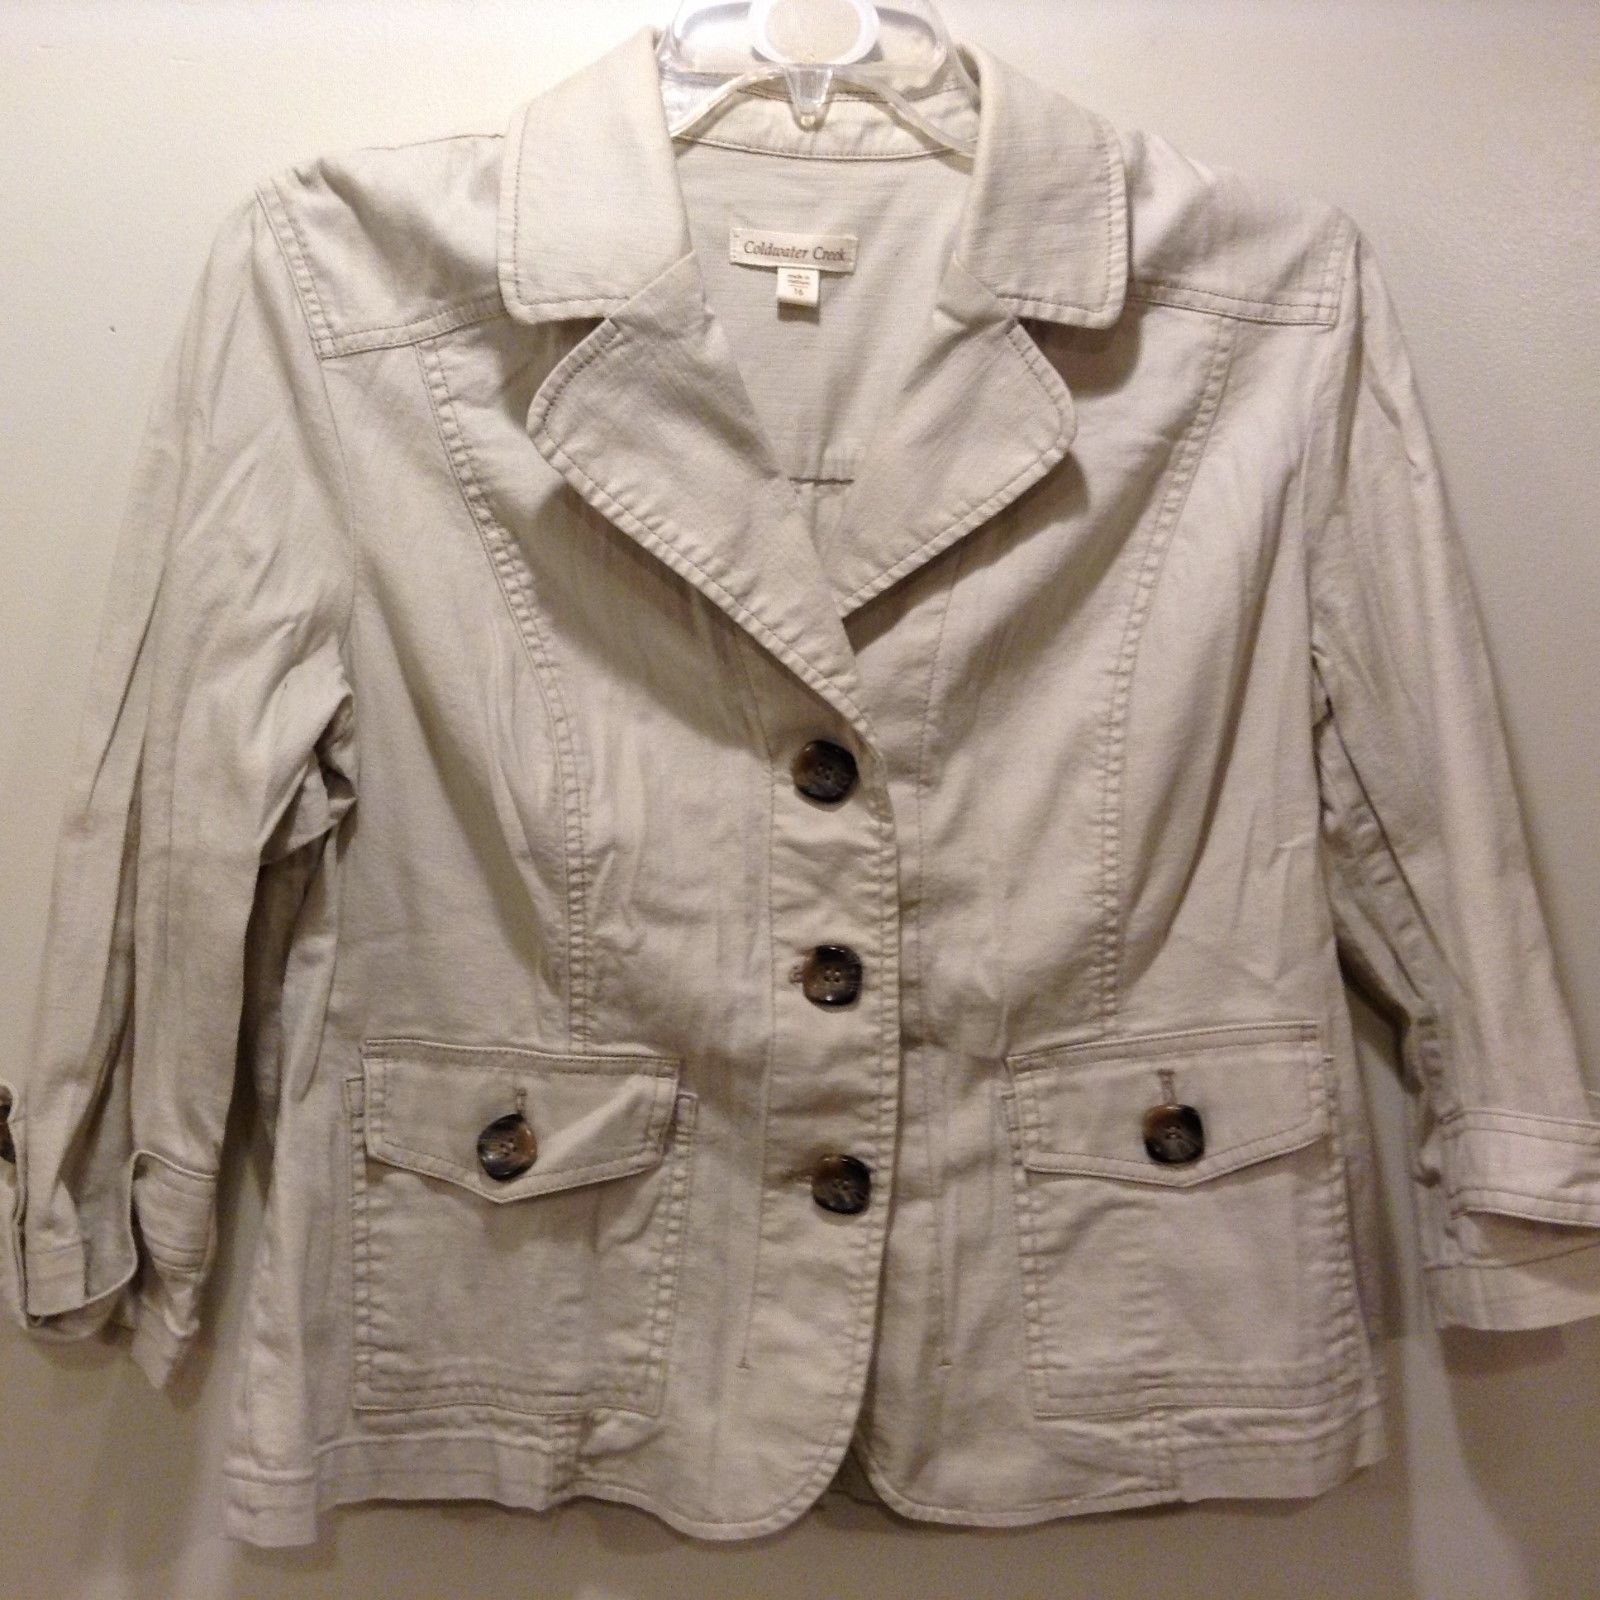 Coldwater Creek Ladies Spring/Fall Beige Jacket Sz 16